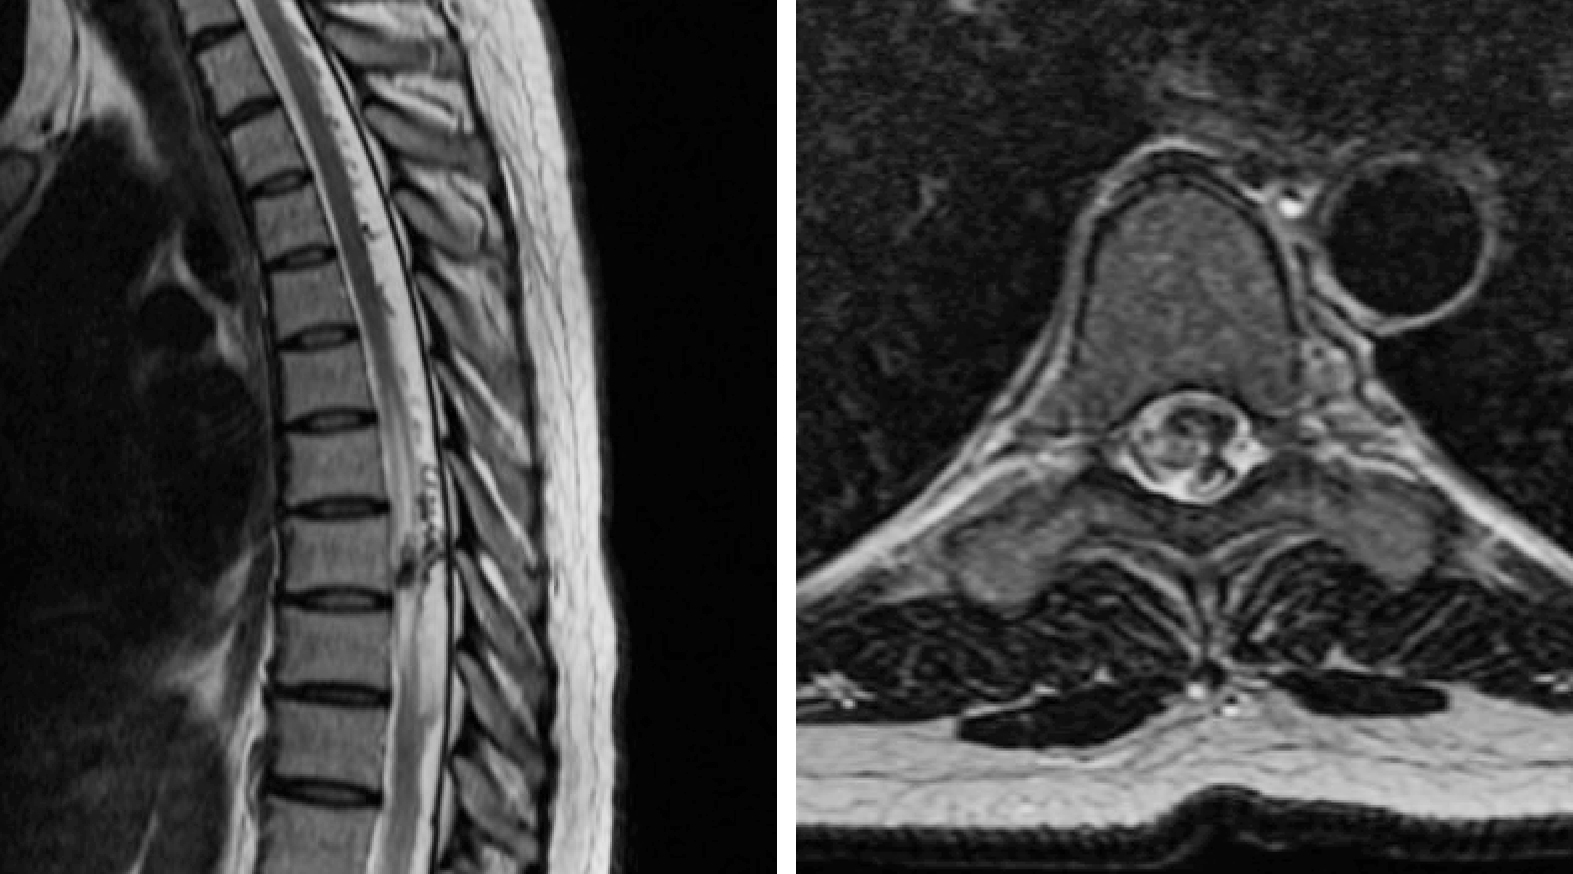 Figure 2: A 48-year-old woman presented with progressive left-sided weakness and numbness. Thoracic MR imaging disclosed hypervascularity (serpiginous flow voids) within the dorsal intradural space together with large intraparenchymal flow voids at T8-9, suggestive of a nidus. Spinal cord edema (left image) was noted. On the axial image (right image), this spinal AVM appeared to have both intramedullary and extramedullary components on the left side.